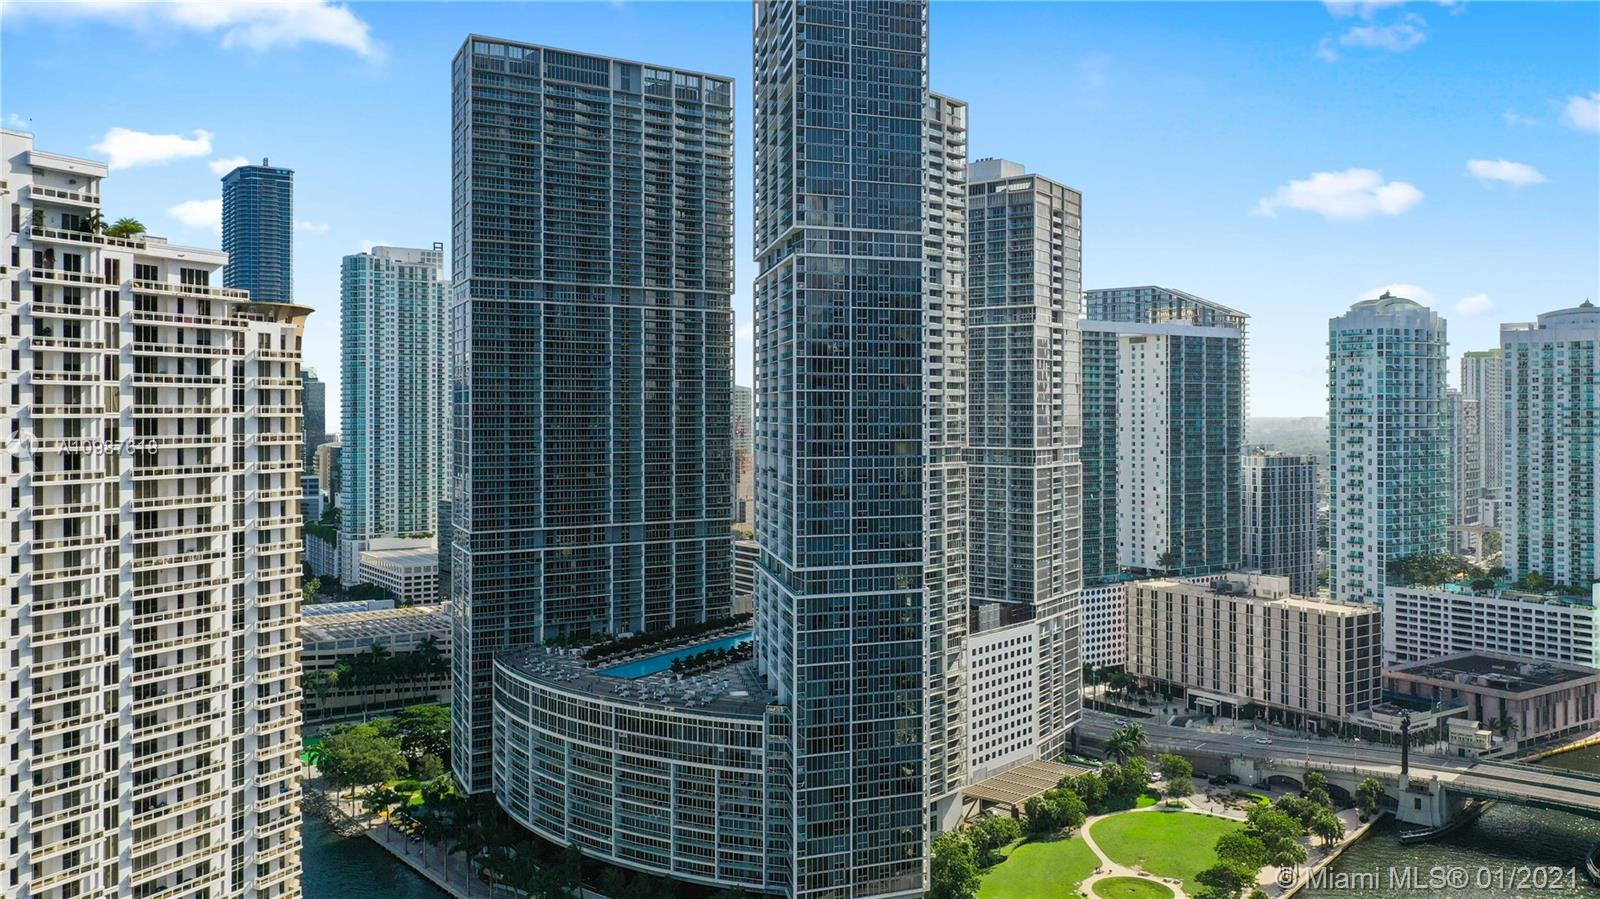 Luxury living at Icon Brickell;  Breathtaking water views on wraparound balcony overlooking Brickell Key & the Port of Miami.  This upgraded 3 bedroom unit features leather covered custom closets, elegant lighting,  top of the line subzero & wolf appliances.  Just a stroll away from Brickell Citicentre,  Mary Brickell Village and downtown Miami.  Icon is home to Cantina La Veinte and Cipriani Restaurant; Building has unparalled amenities, spa, state of the art gym and much more.  Tenant occupied until May 2021. Minimum 24 hour notice for showings.